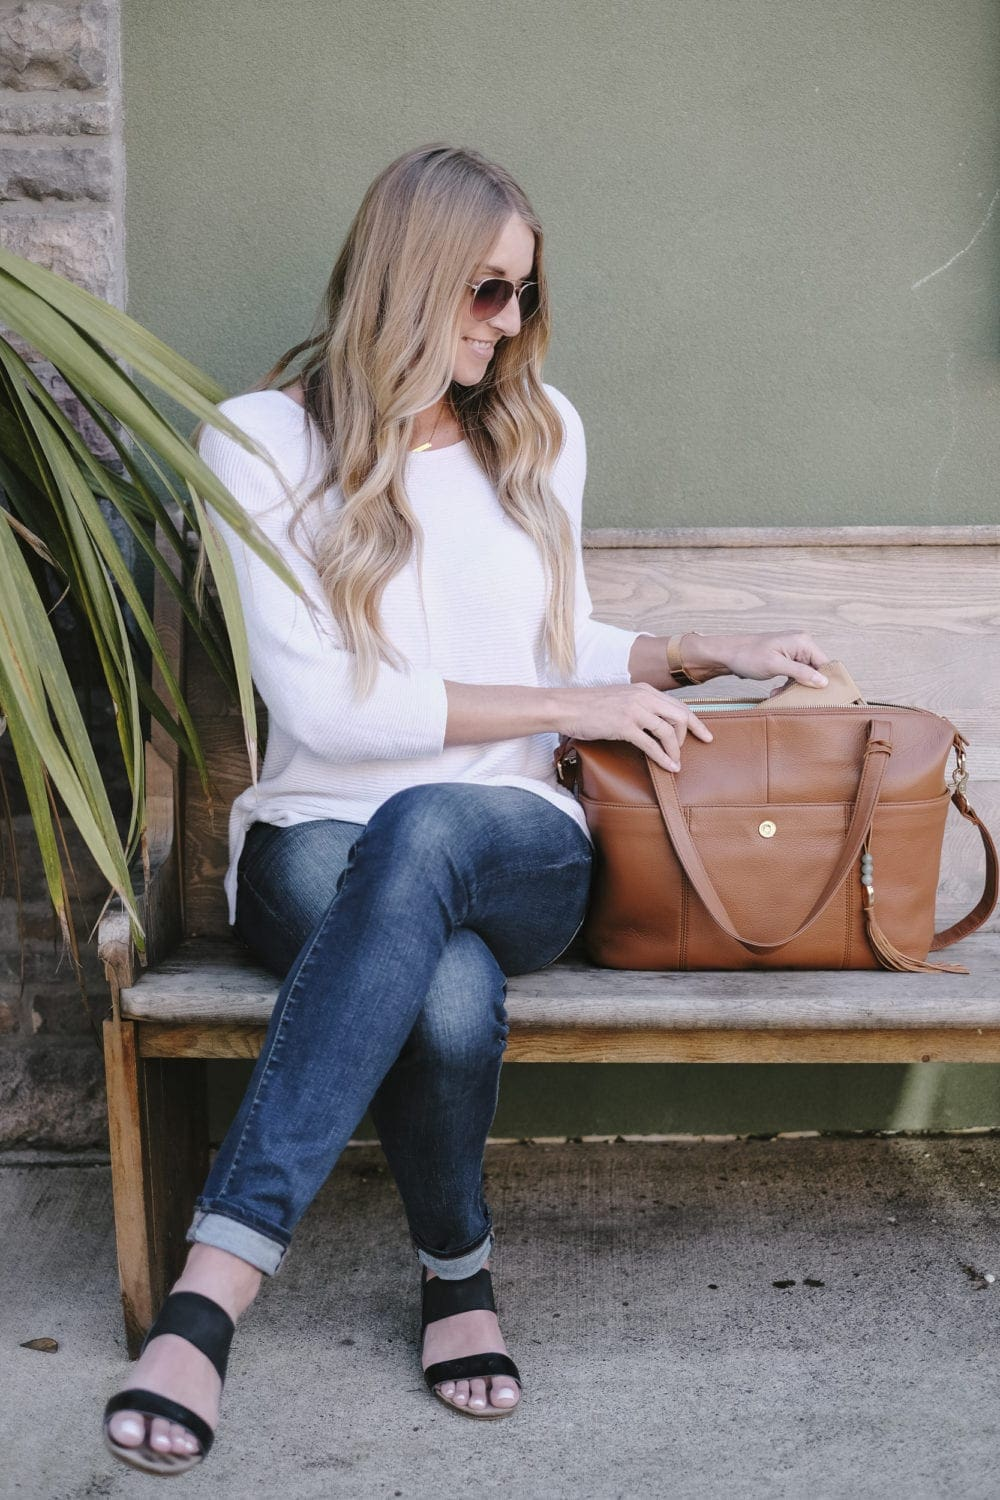 Blonde woman sitting next to lily jade diaper bag on a bench